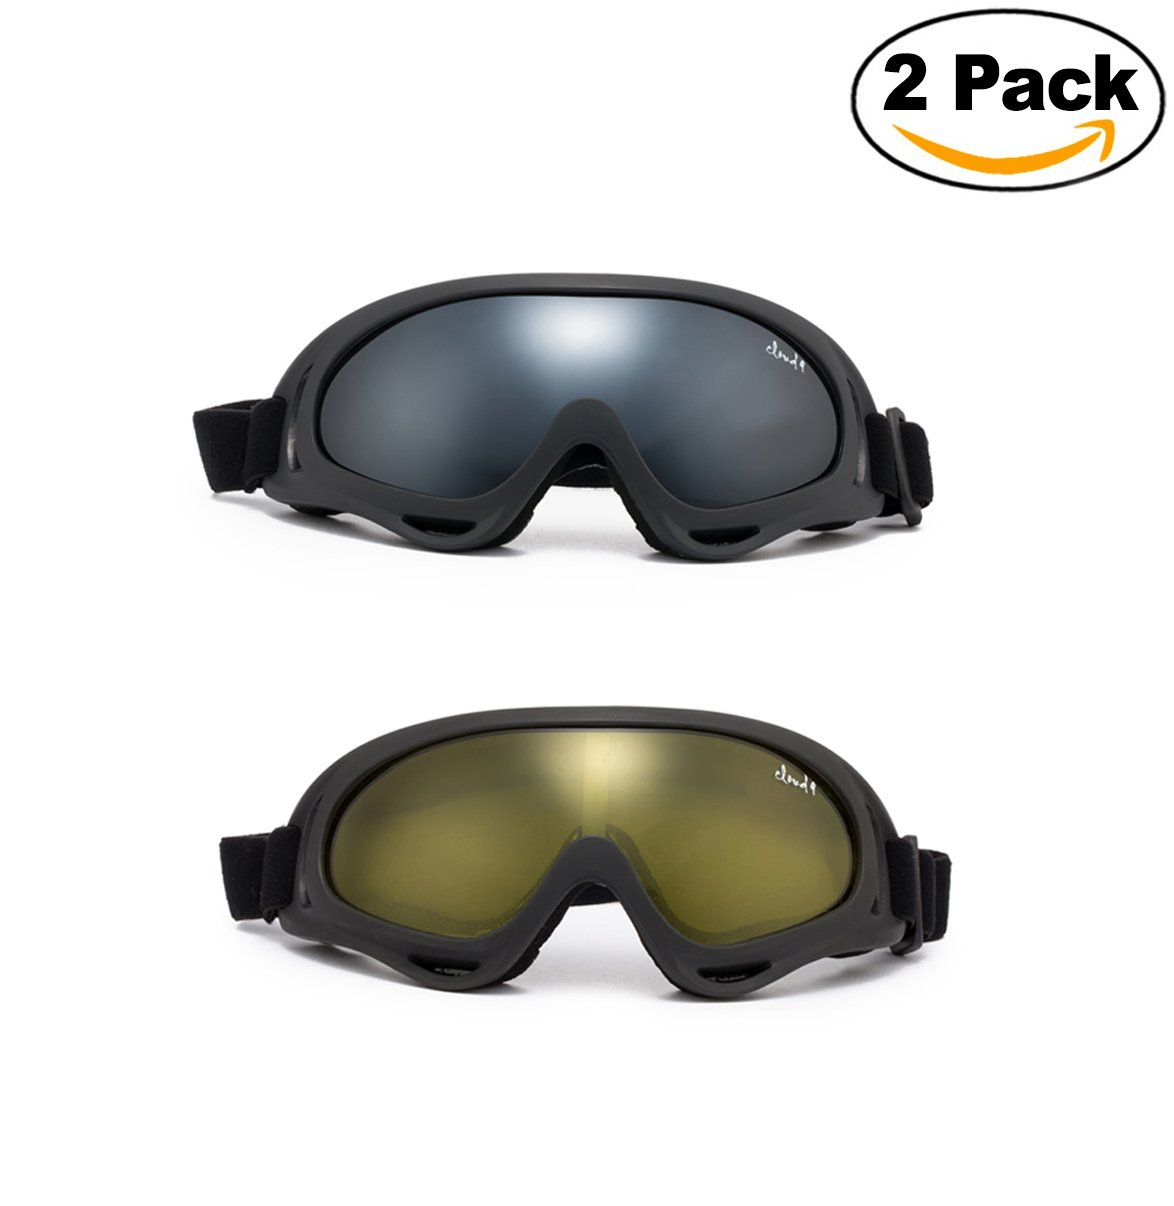 Cloud 9 - Safety Goggles ''Moto'' Motorcycle Sports Interchangable Lenses UV Protection Multicolor Mirror Night Vision